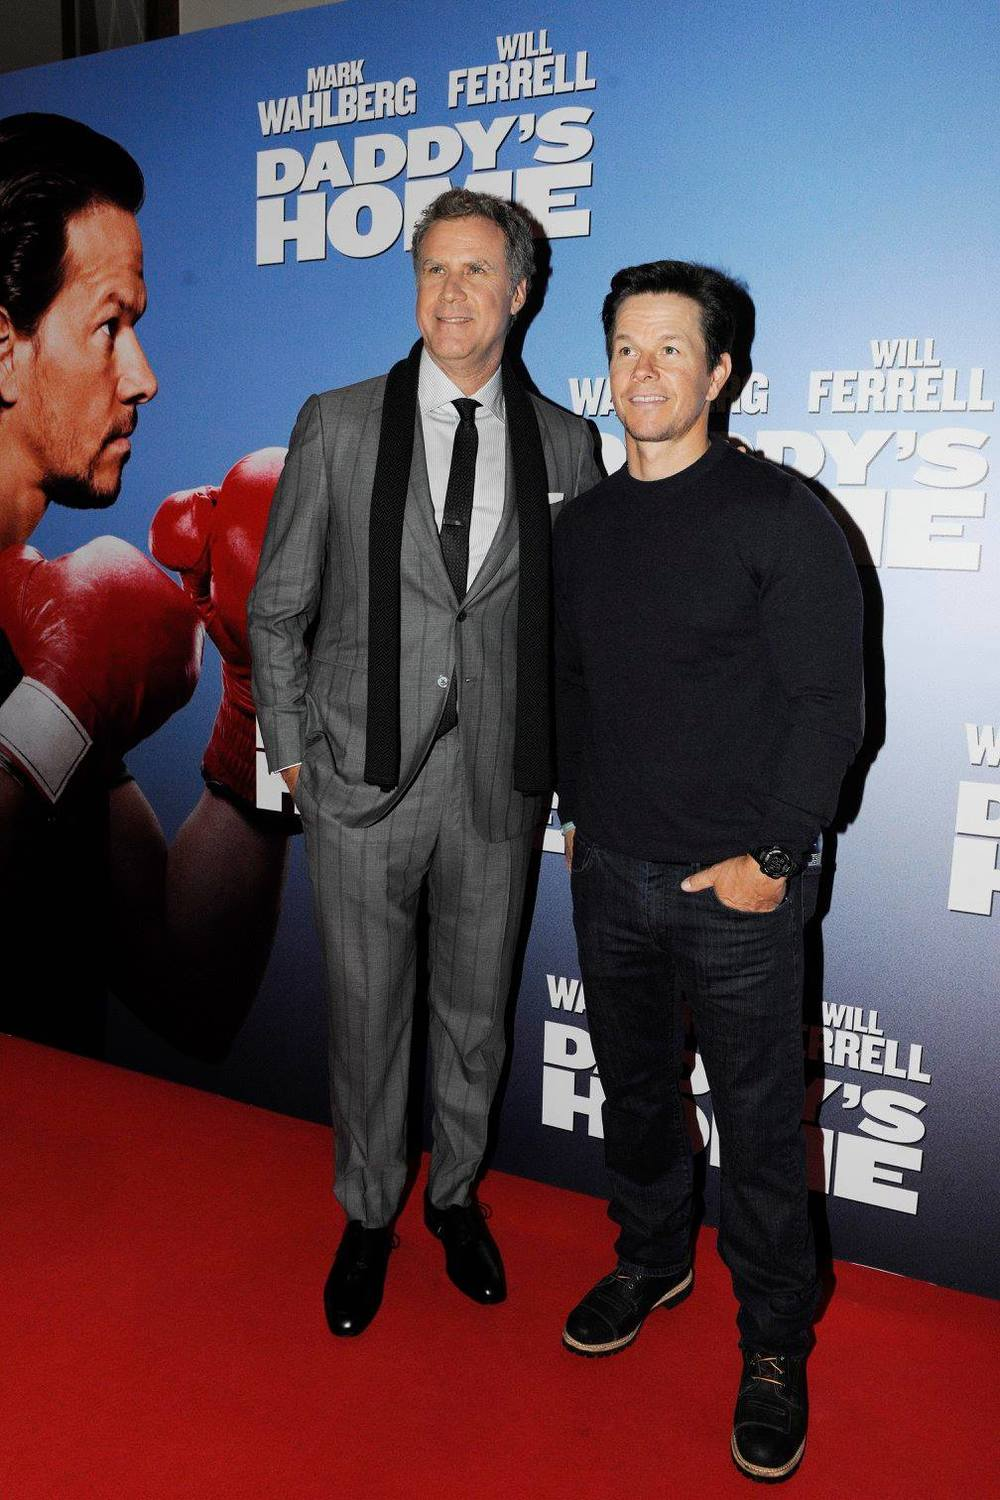 Will-Ferrell-Mark-Wahlberg-Daddys-Home-Ireland-Premiere.jpg